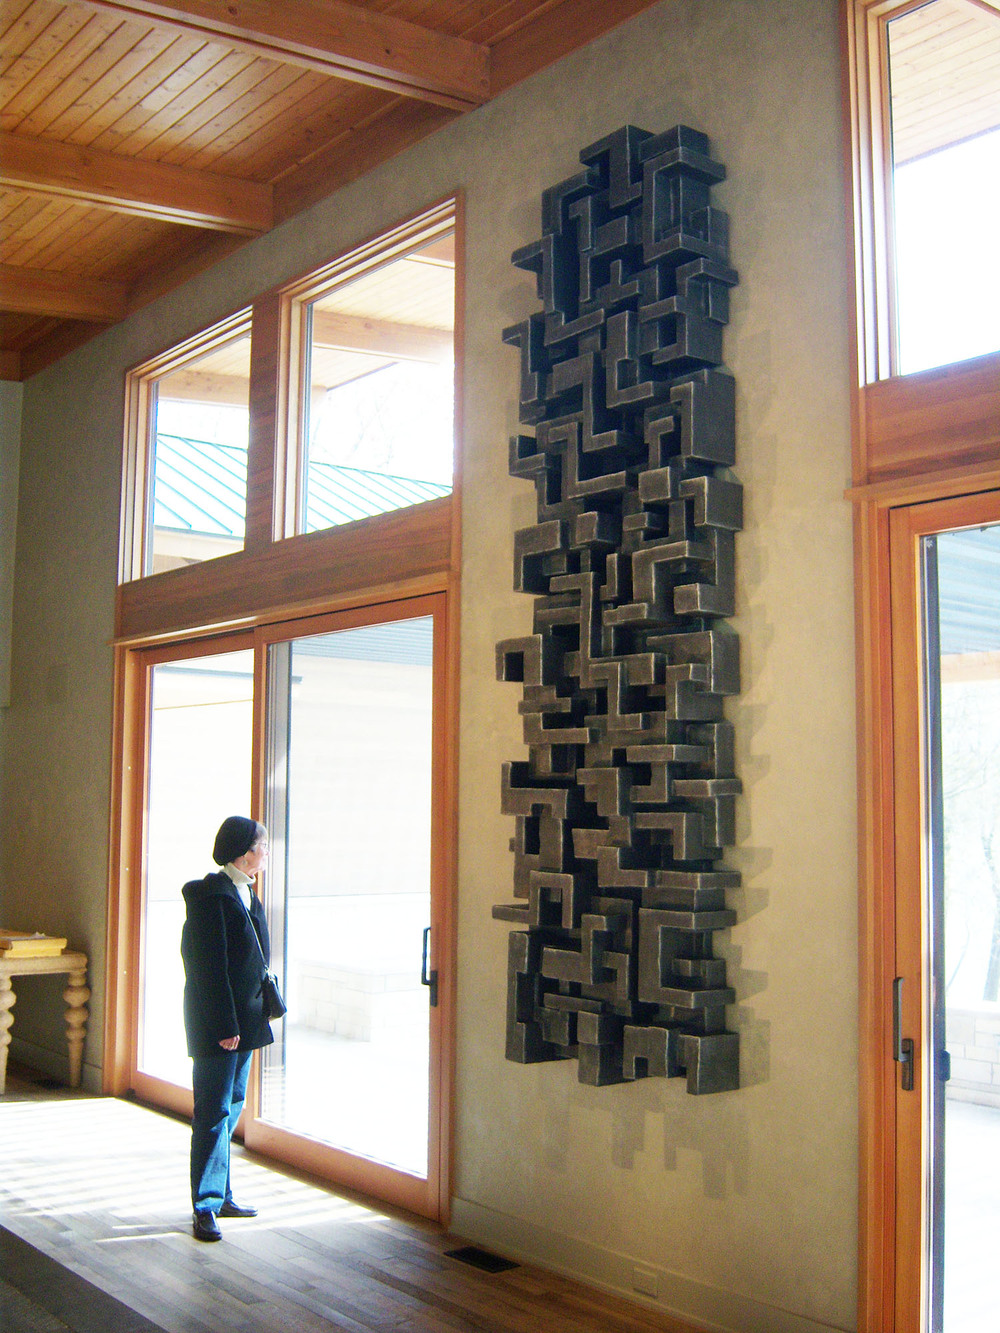 TOTEM, commission for private residence, near Chicago